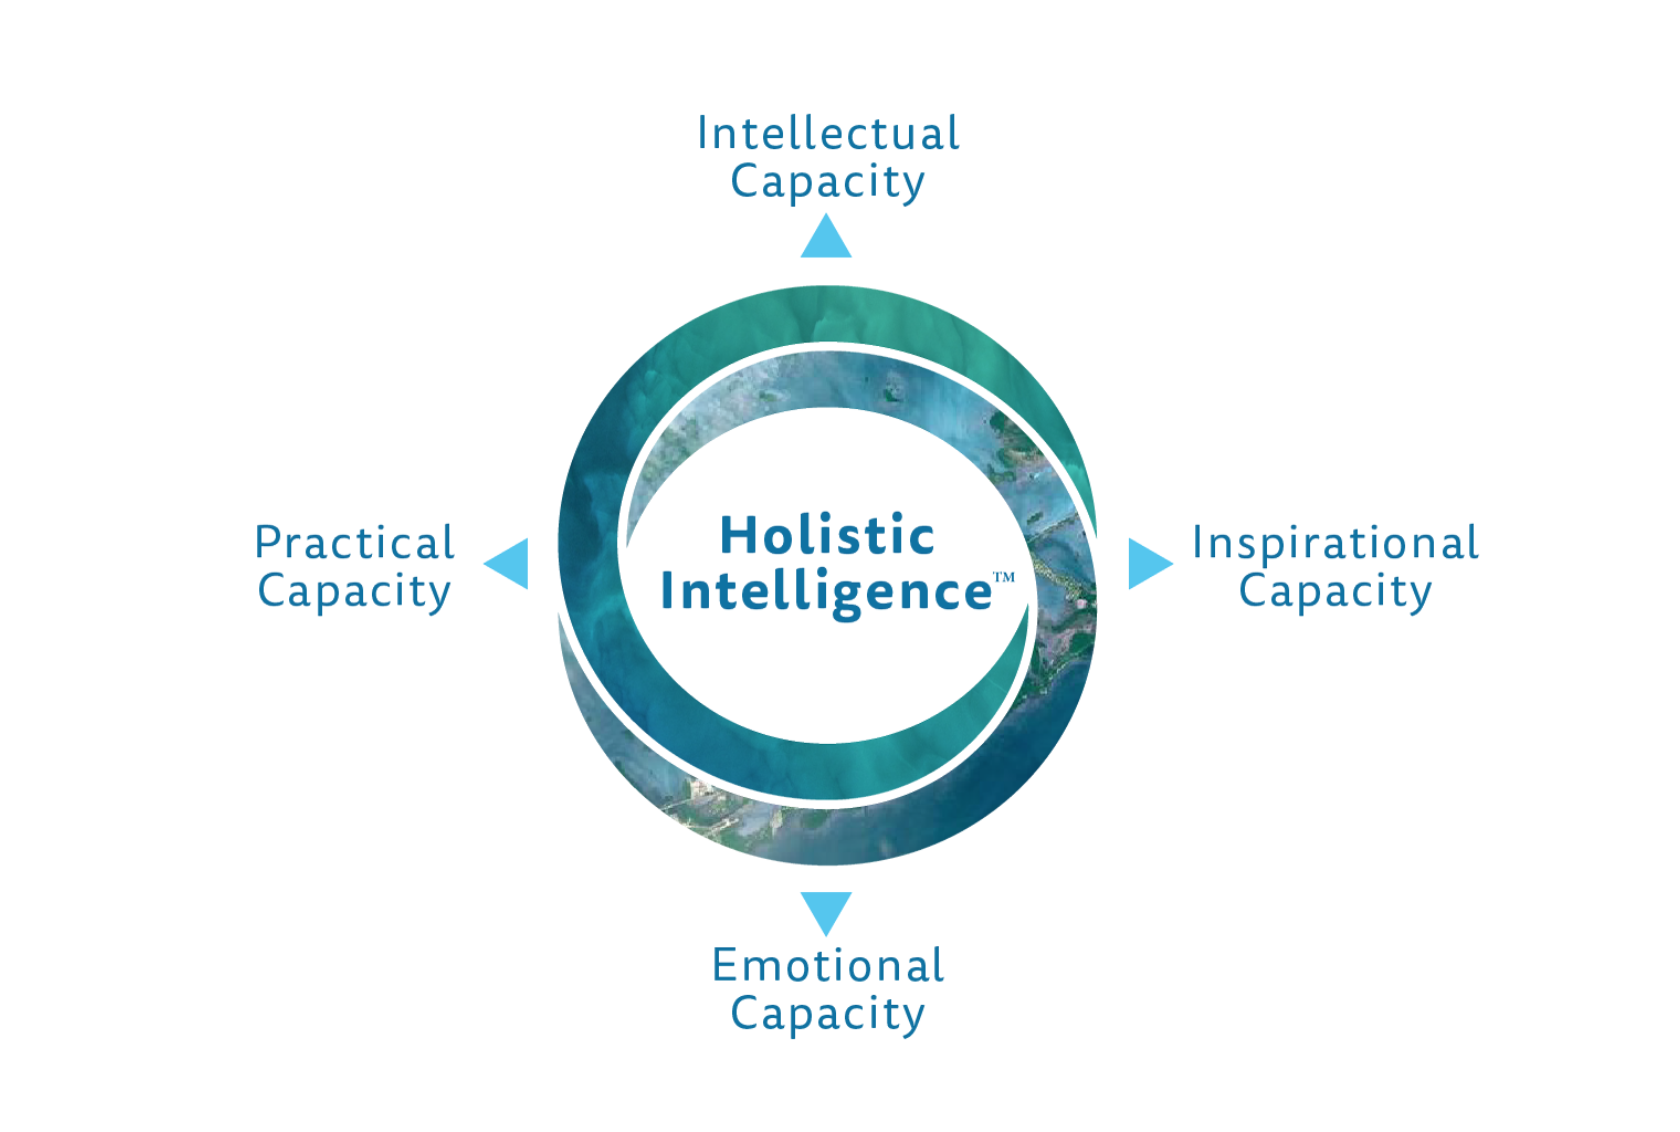 holistic intelligence